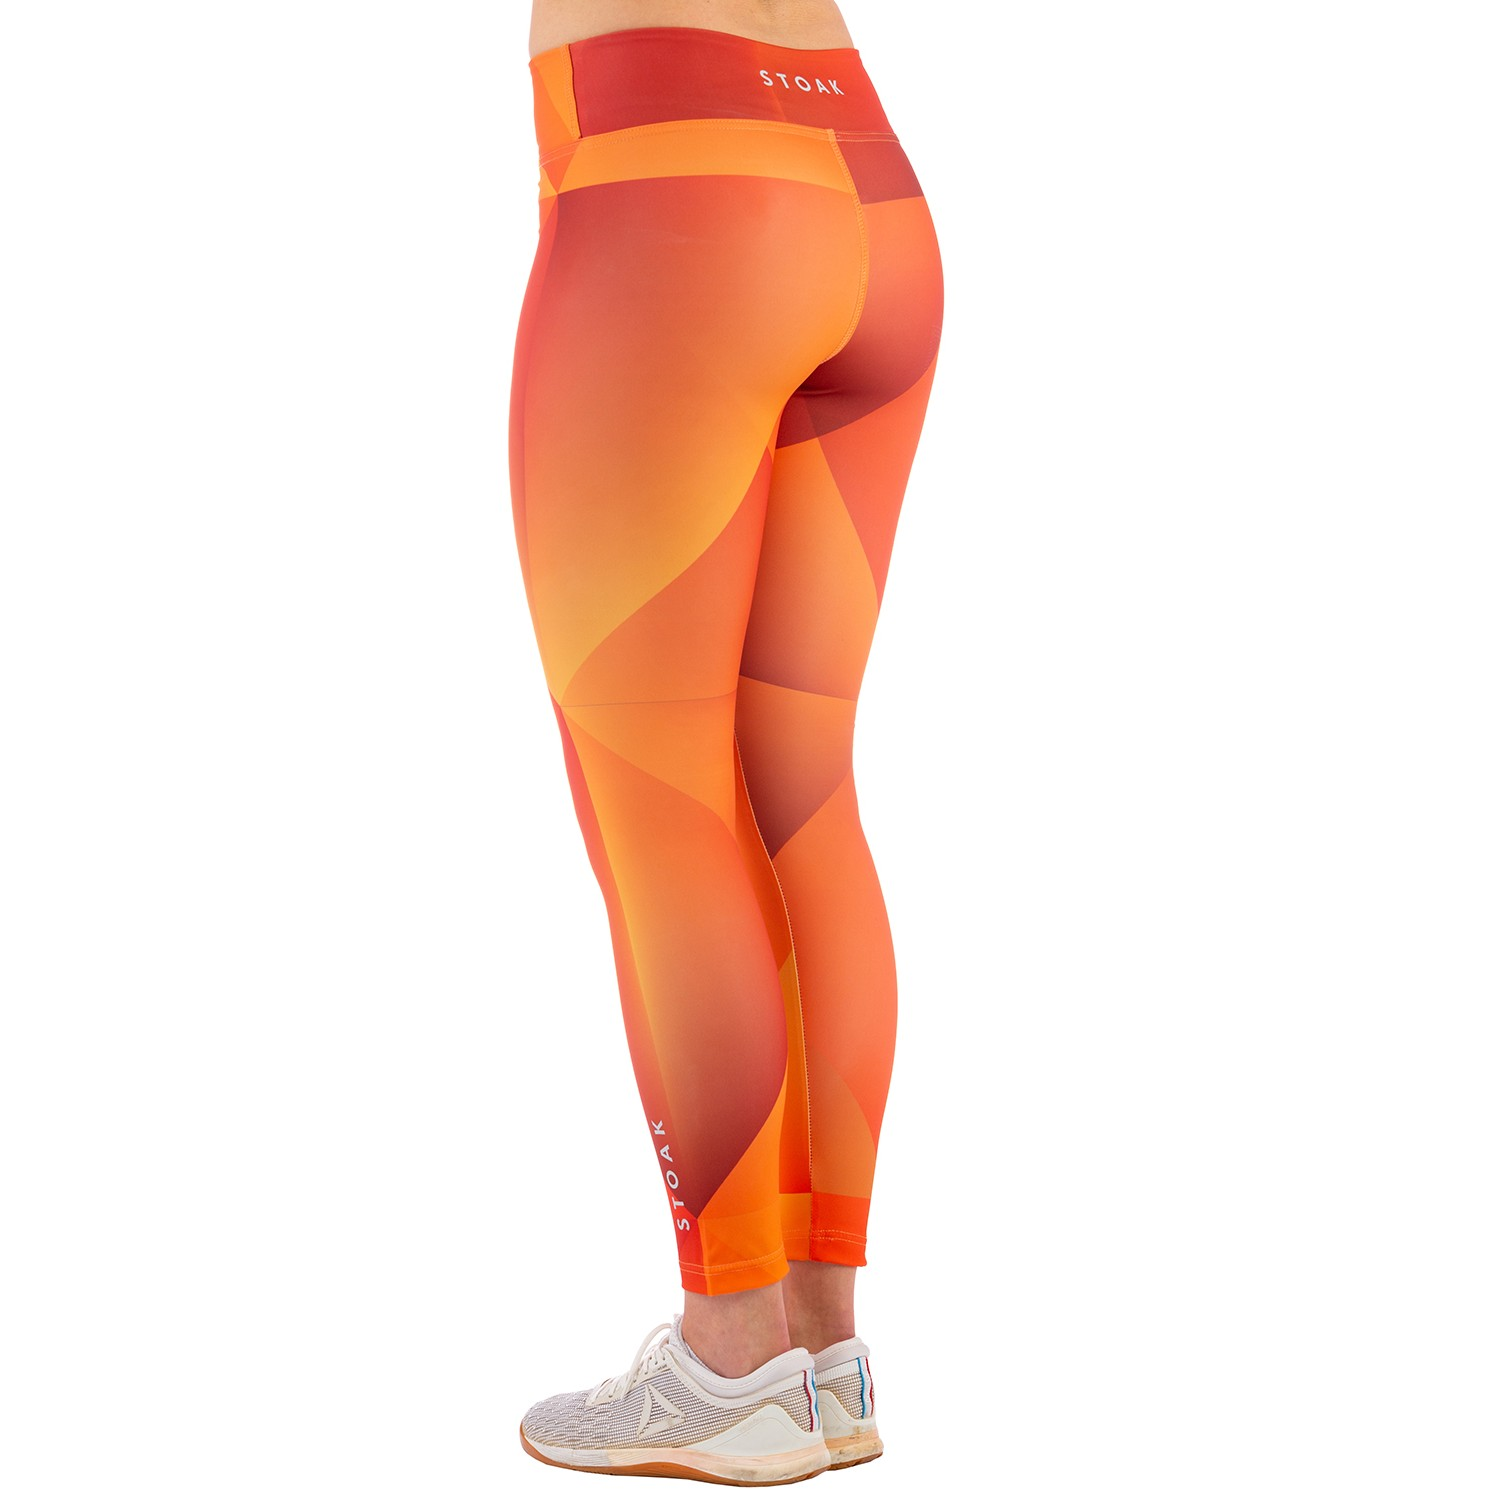 STOAK IN FLAMES Performance Leggings